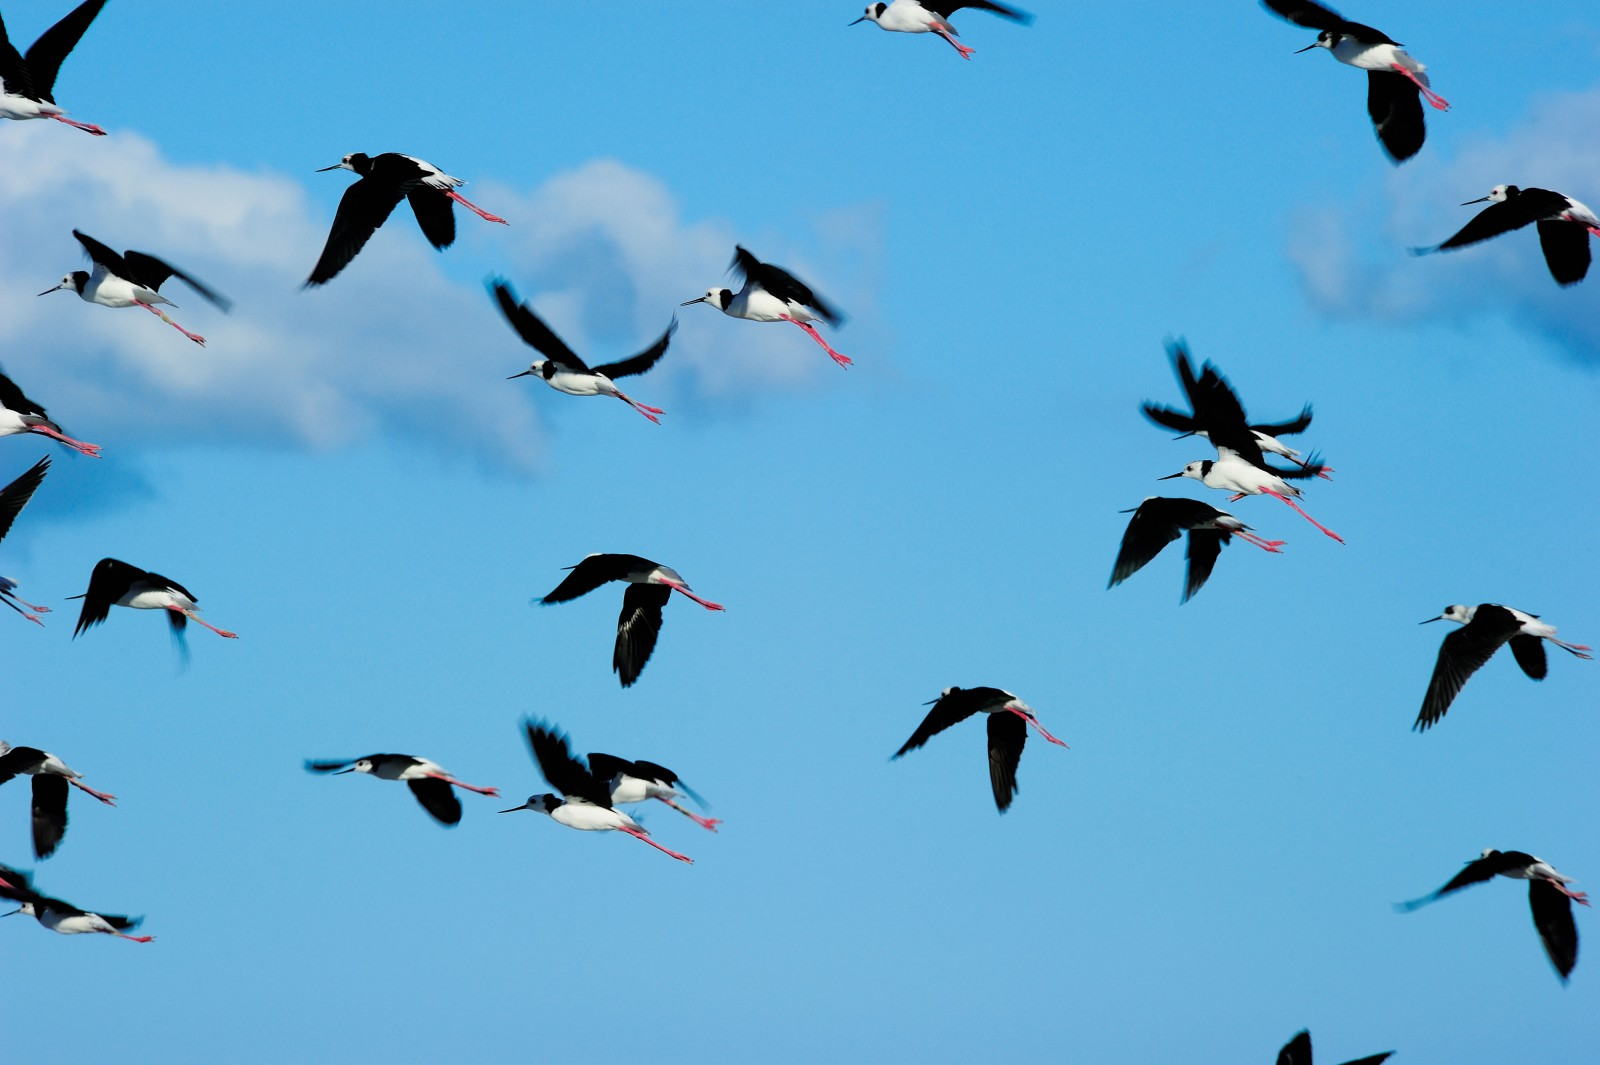 A flock of pied stilts wing their way across the skies above the coast near Pūkorokoro/Miranda on the shores of the Firth of Thames. Tens of thousands of wading birds make the firth their home, with large numbers of Arctic breeding species, including bar-tailed godwits, red knots and smaller numbers of eastern curlew and sharp-tailed sandpipers migrating to the intertidal mudflats each summer to fatten up on crustaceans.